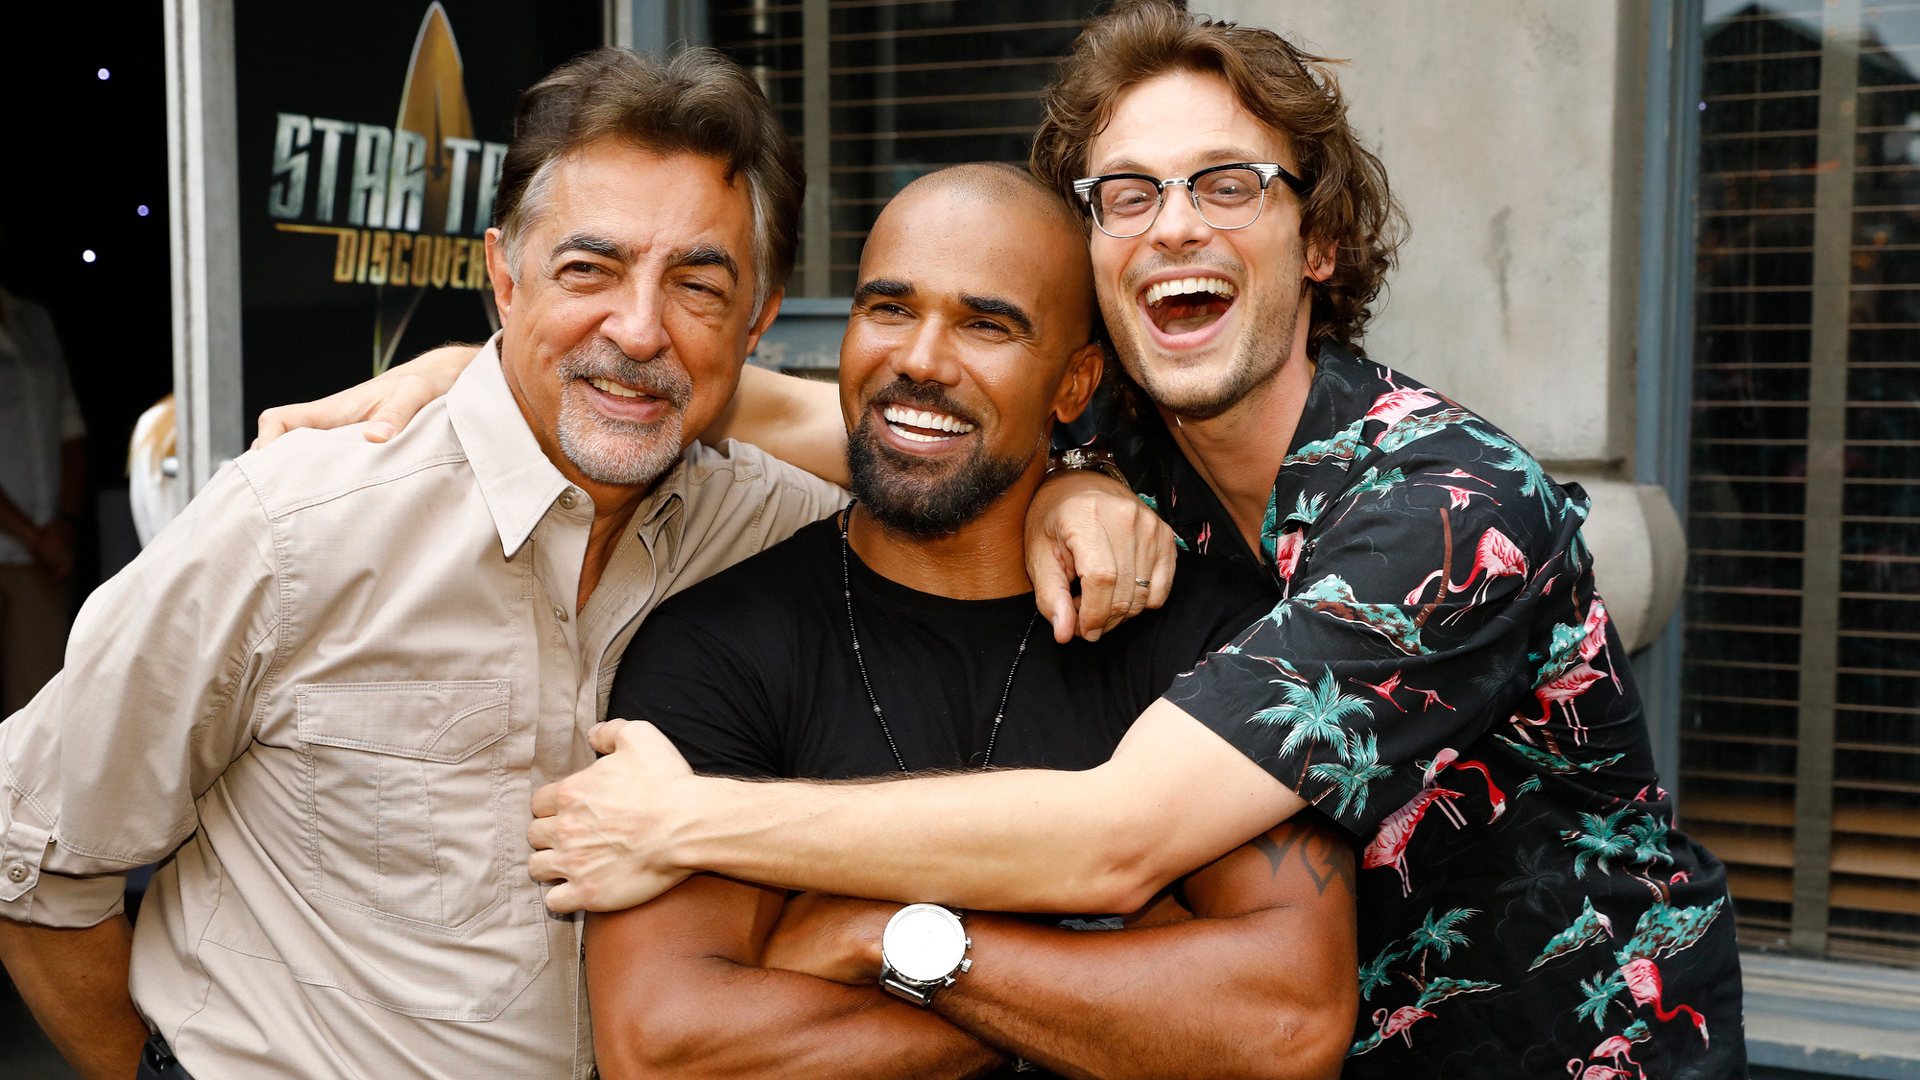 Joe Mantegna (Criminal Minds), Shemar Moore (S.W.A.T.), and Matthew Gray Gubler (Criminal Minds)